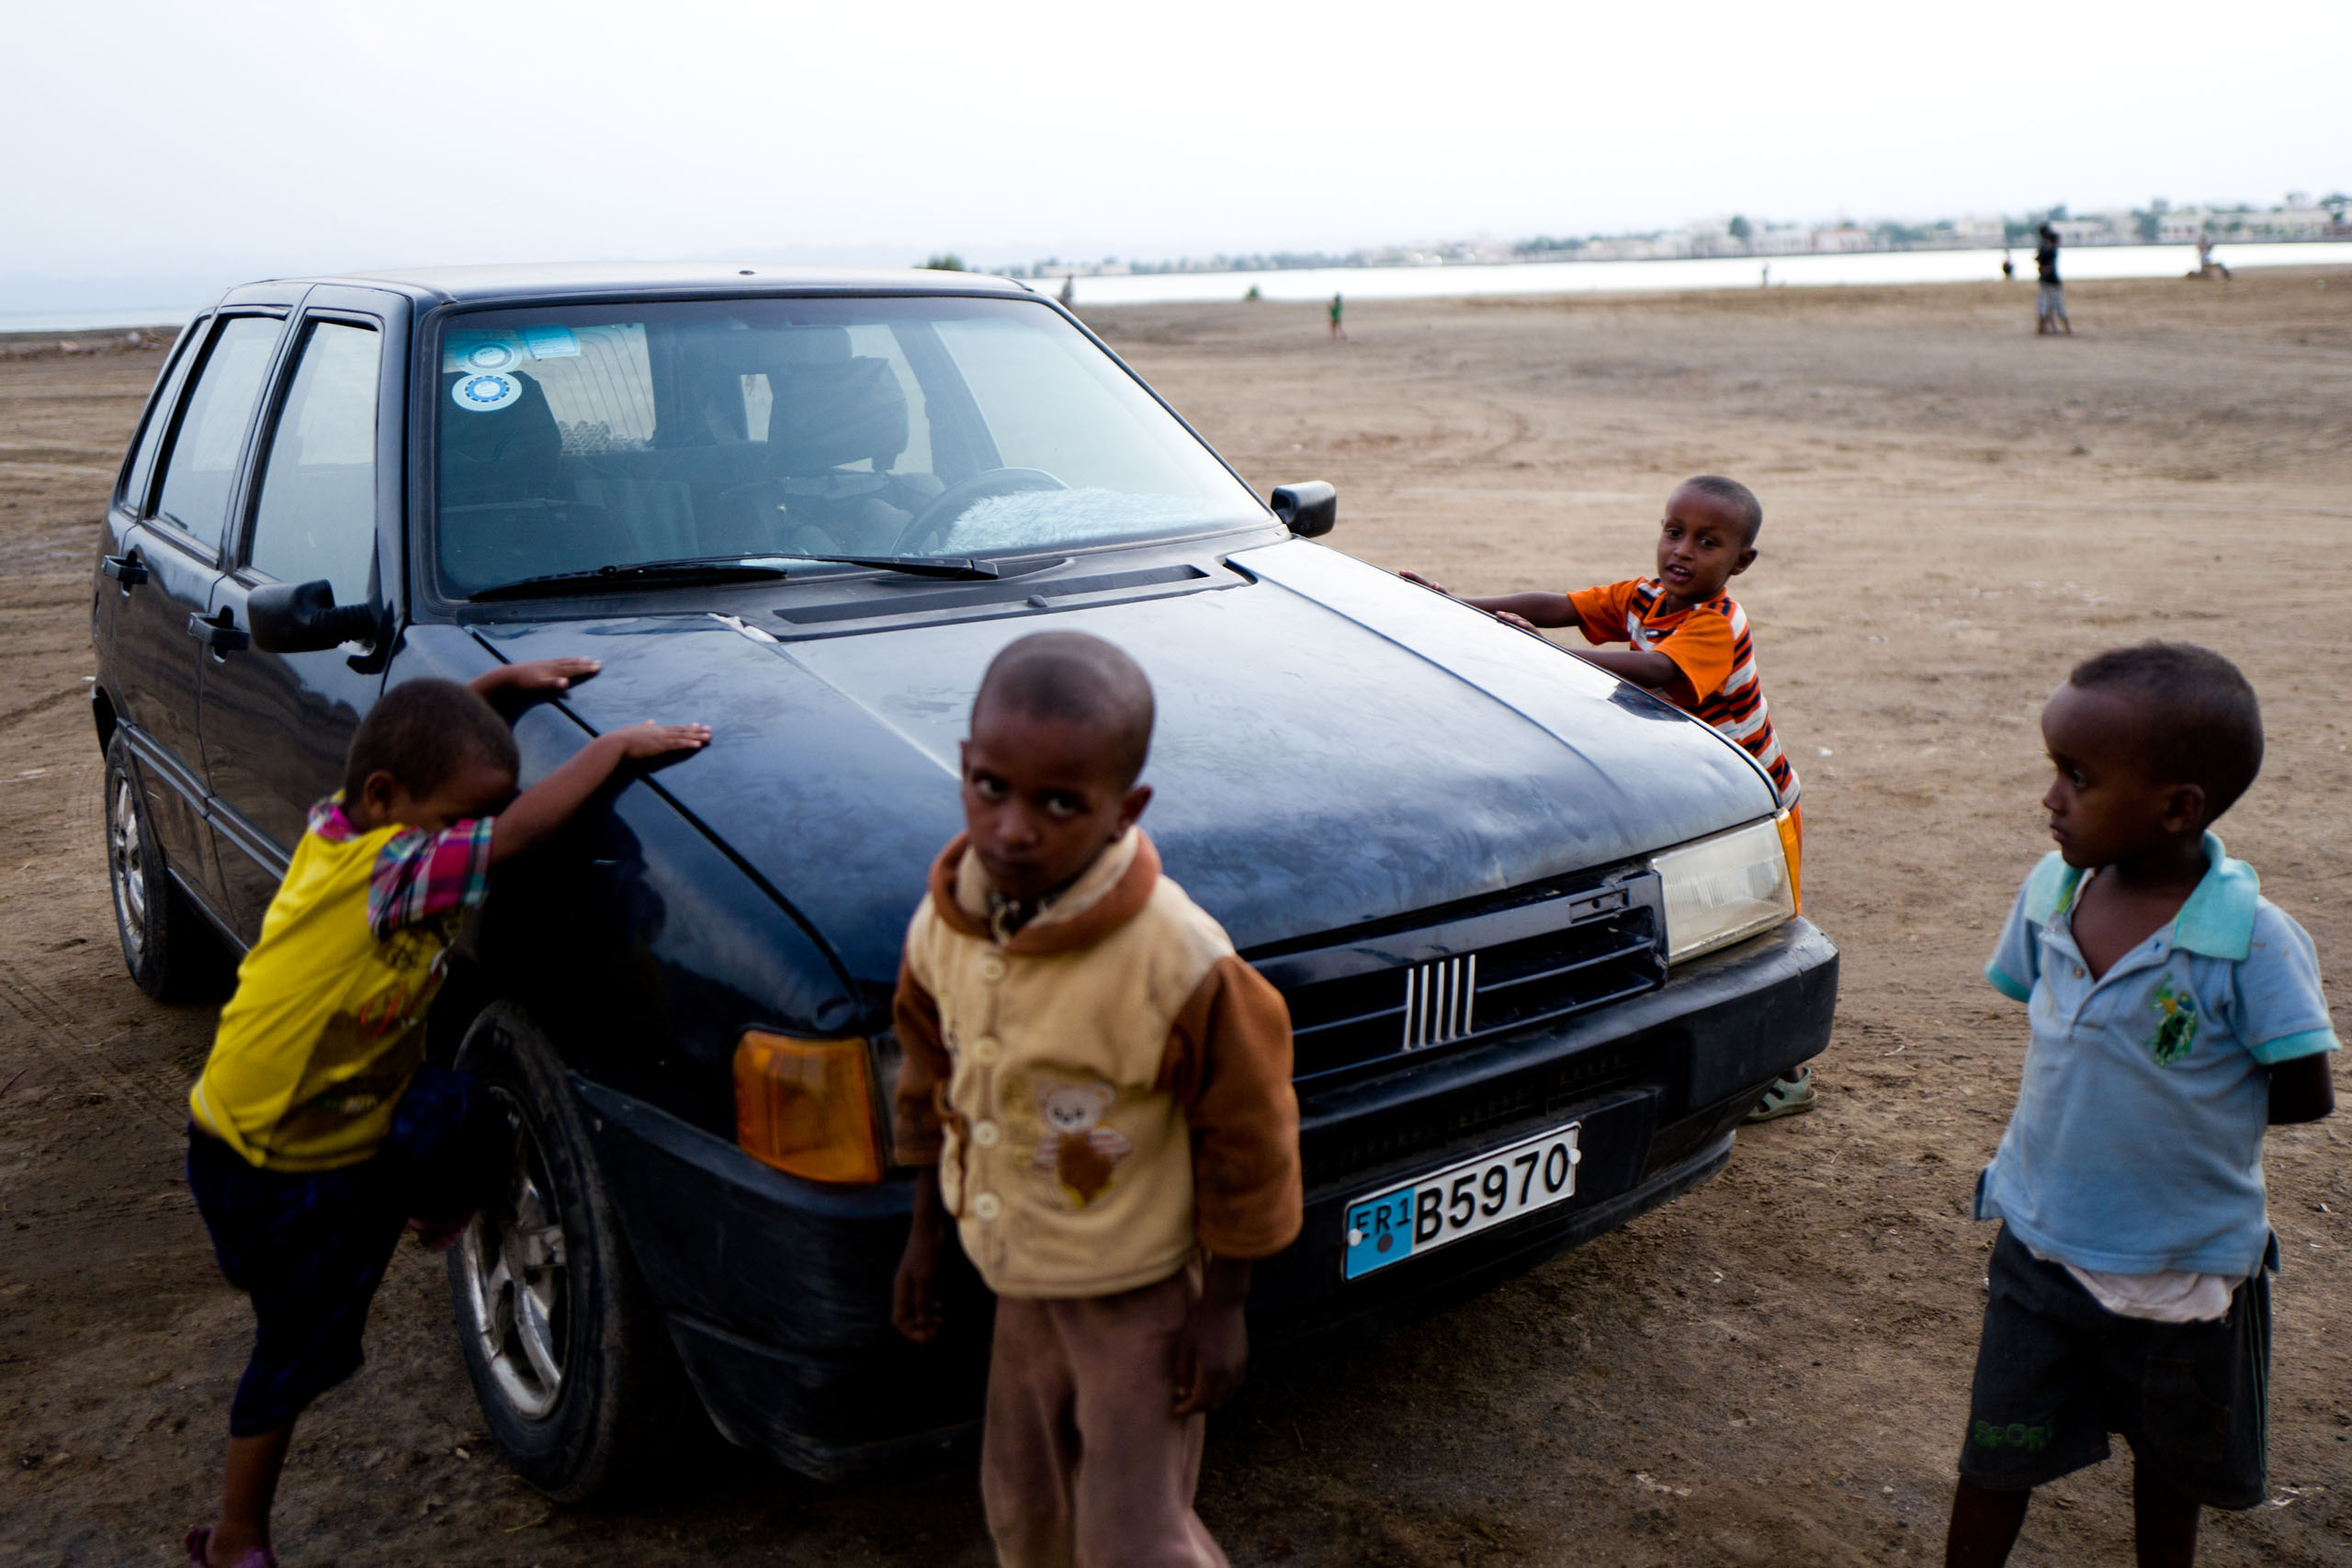 Children playing  next to a Fiat Uno car on the streets of Massawa.